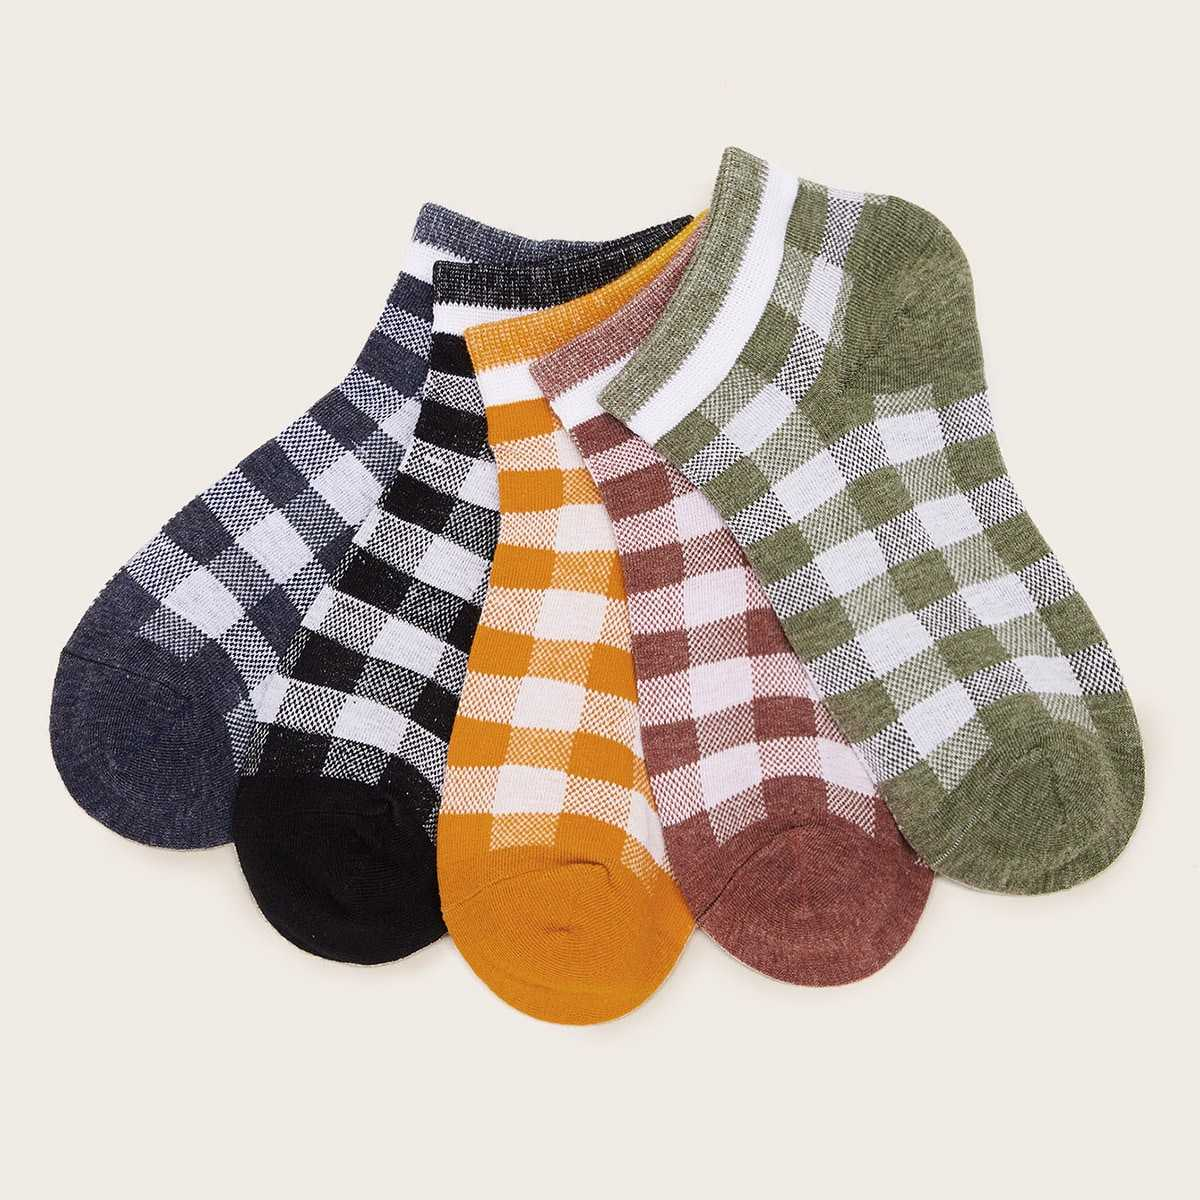 Gingham Pattern Socks 5pairs in Multicolor by ROMWE on GOOFASH